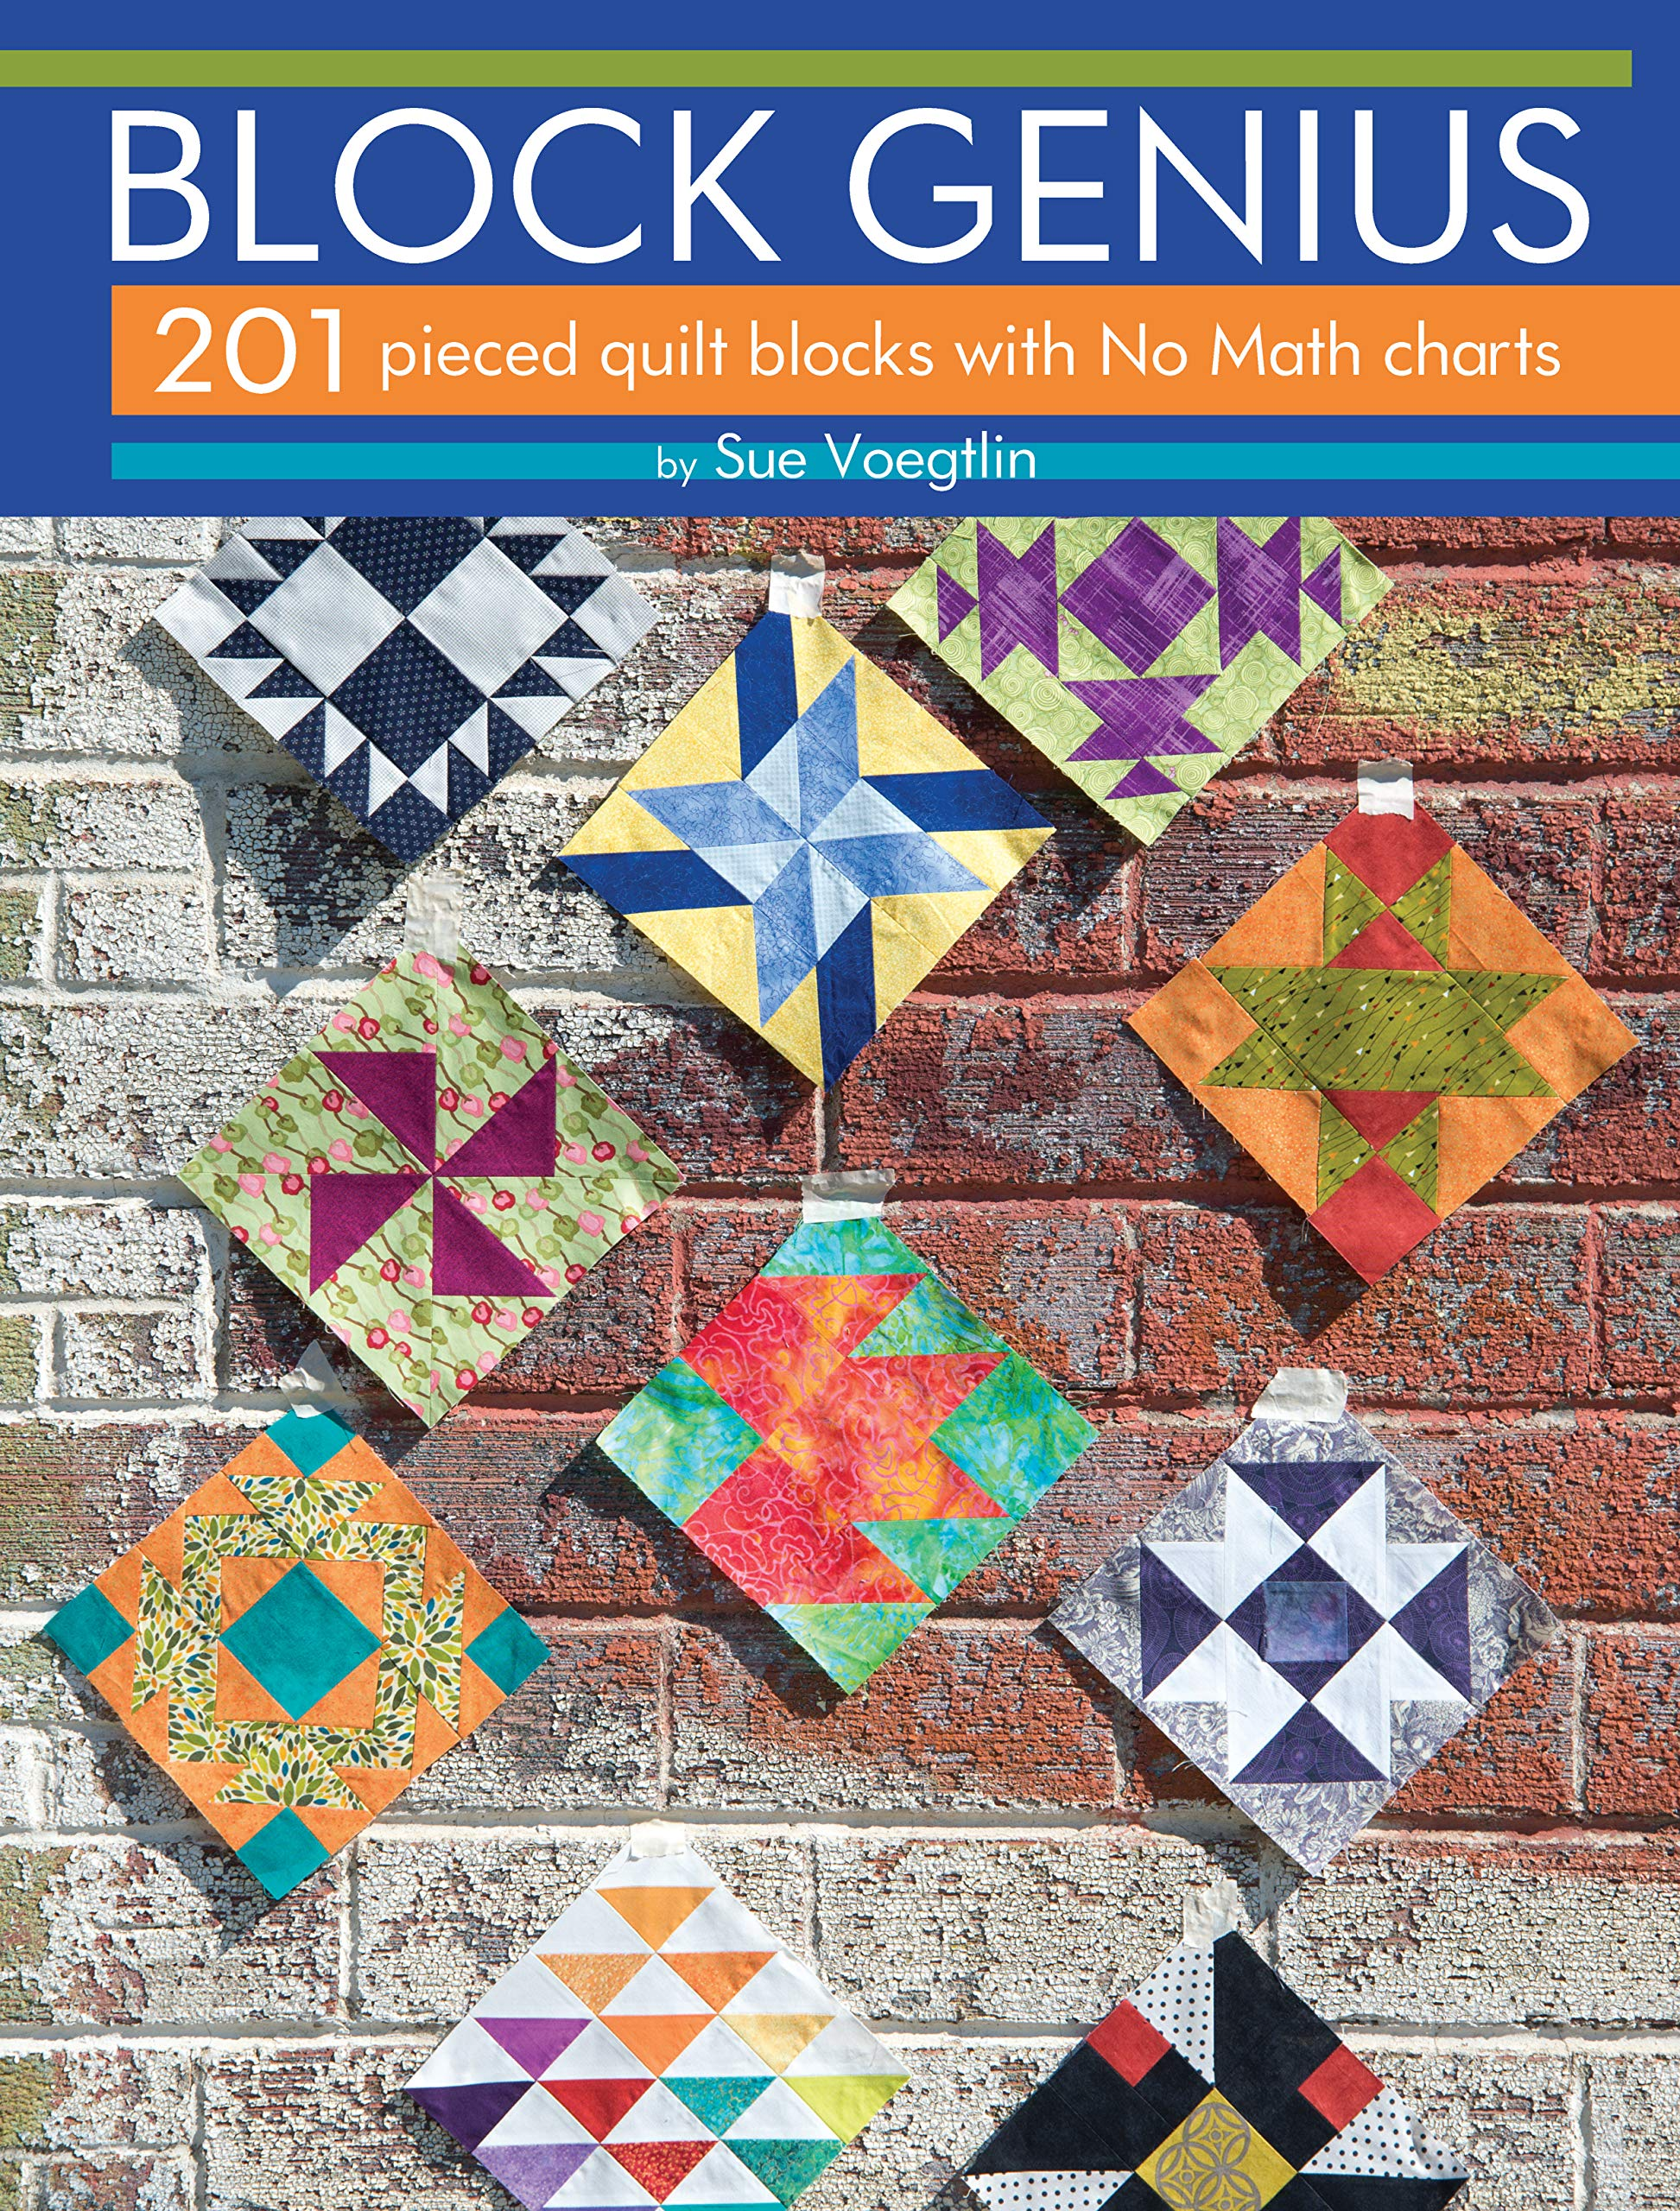 Block Genius: 201 Pieced Quilt Blocks with No Match Charts (Landauer) Clear Instructions, Expert Advice, Accurate Measurements, and Exploded Diagrams for Classic 6, 9, and 12 Inch Blocks PDF